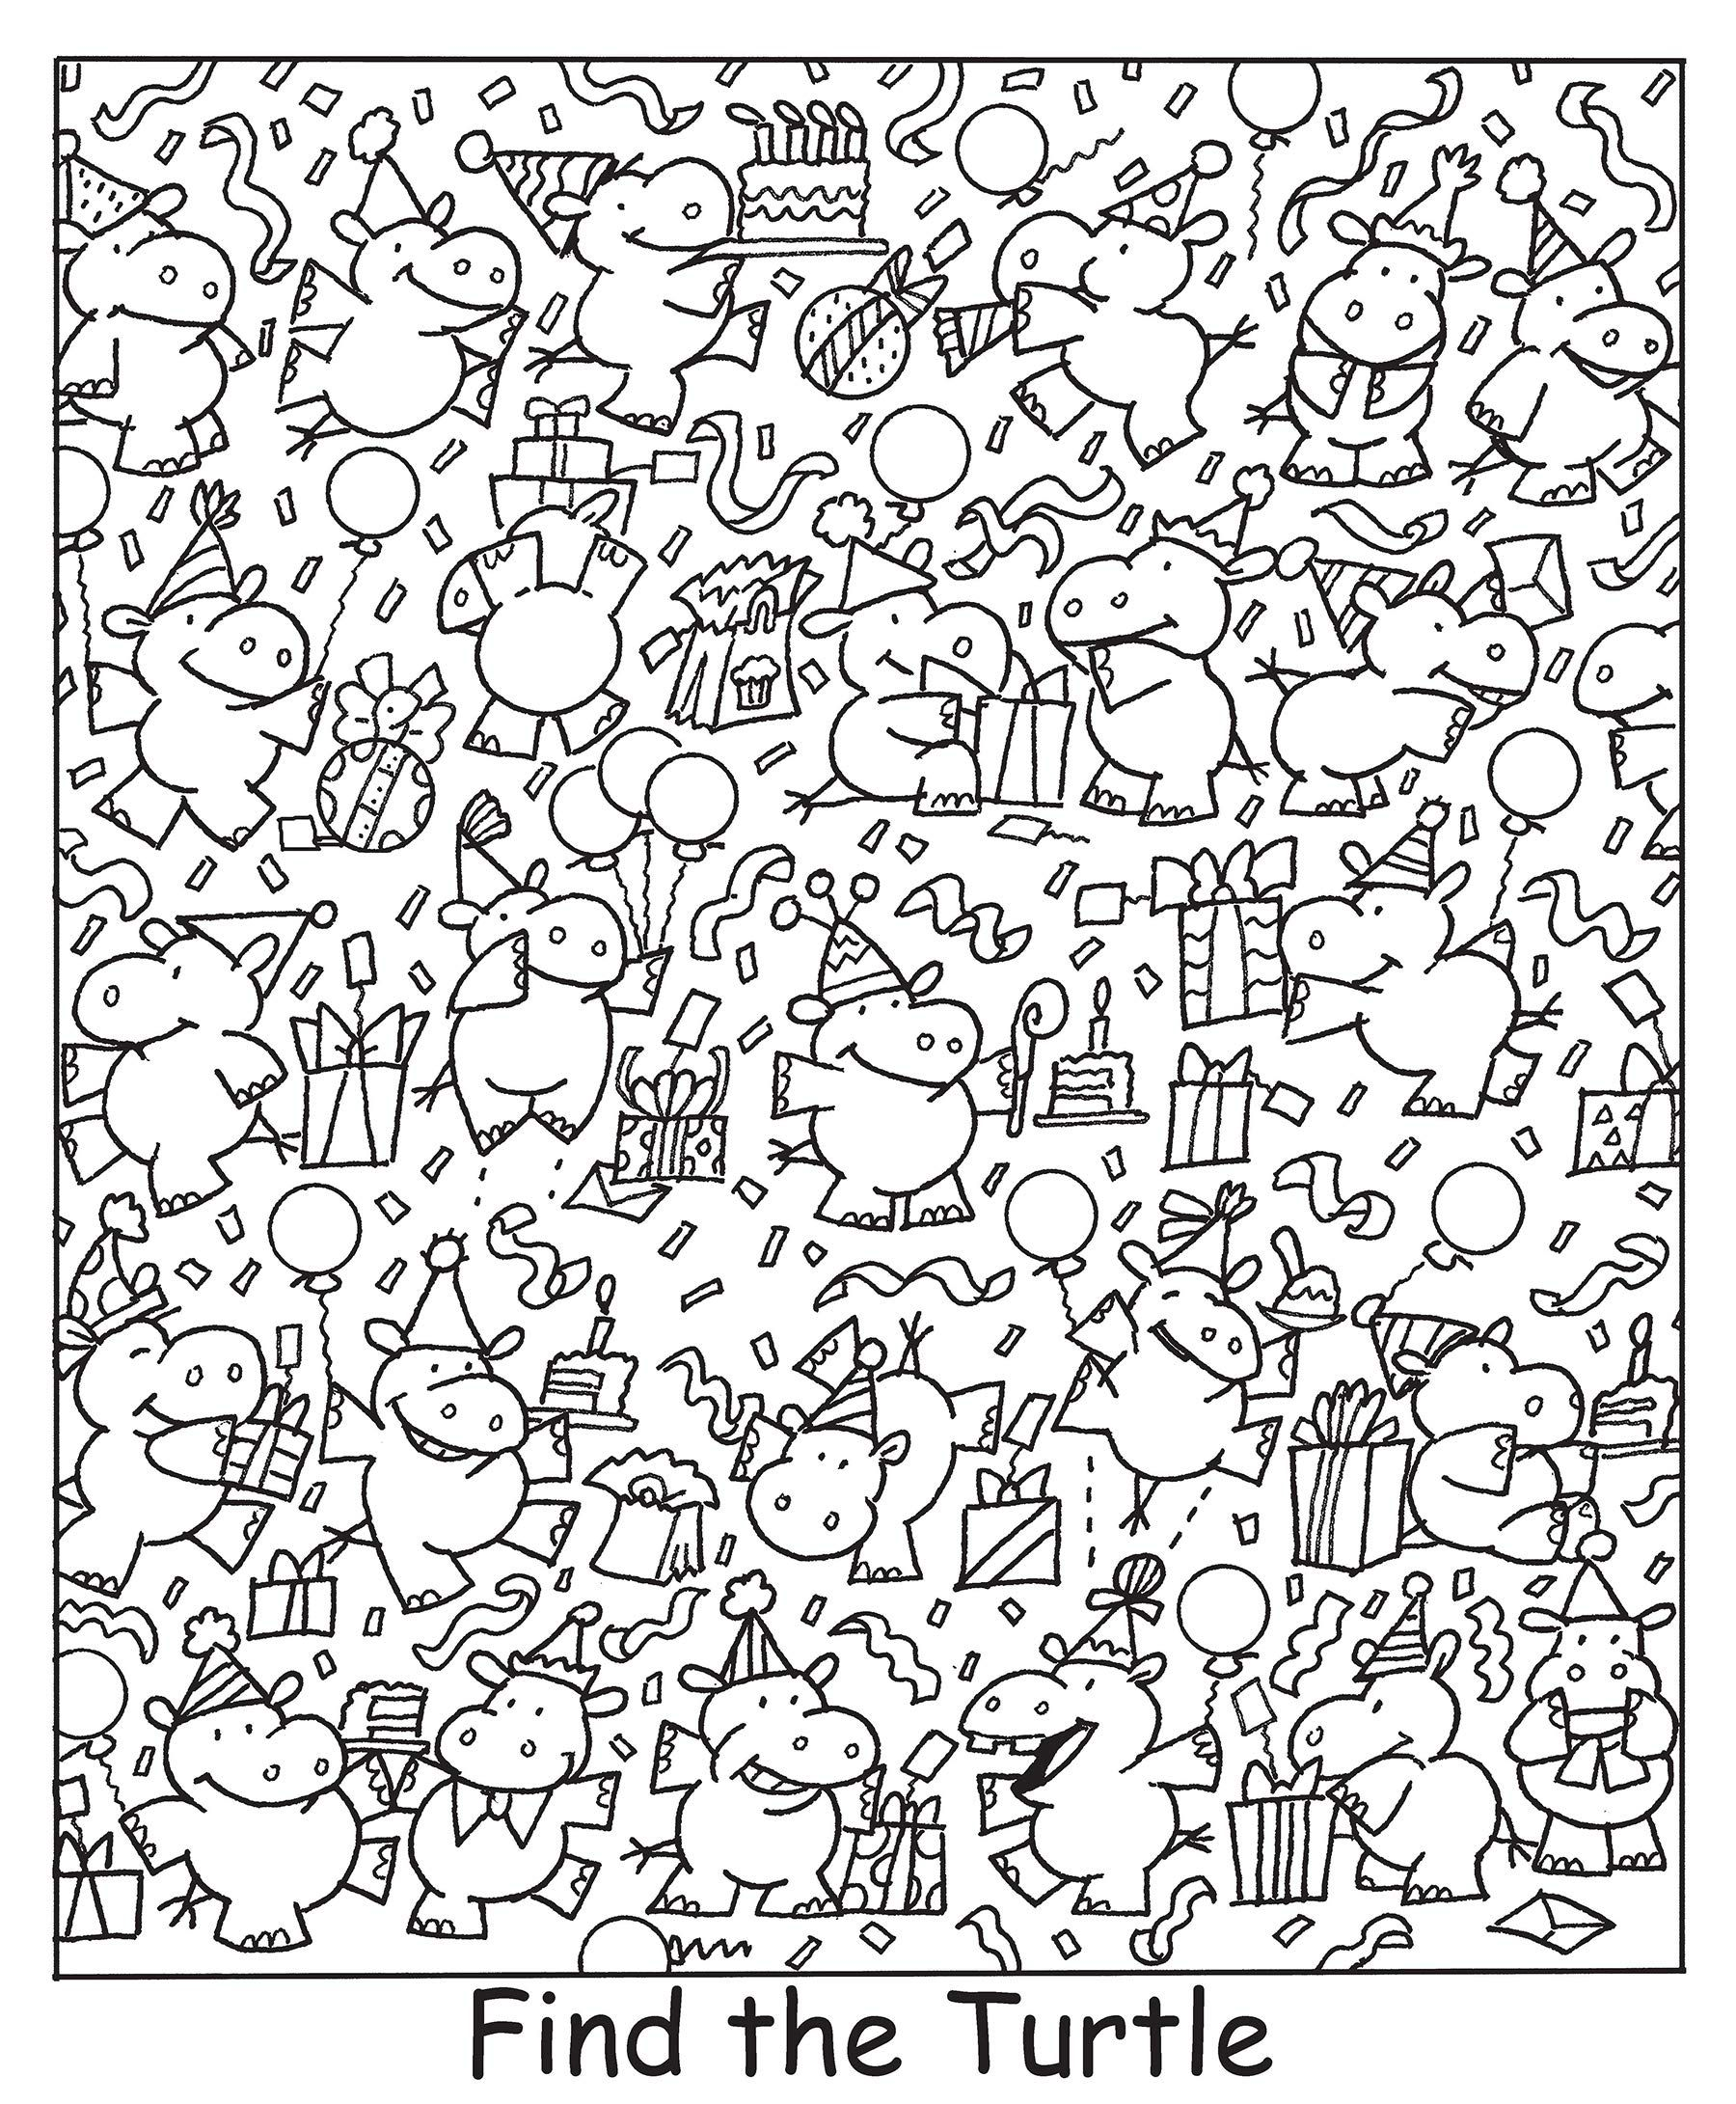 Find The Turtle Coloring Pages Cool Coloring Pages Colouring Pages